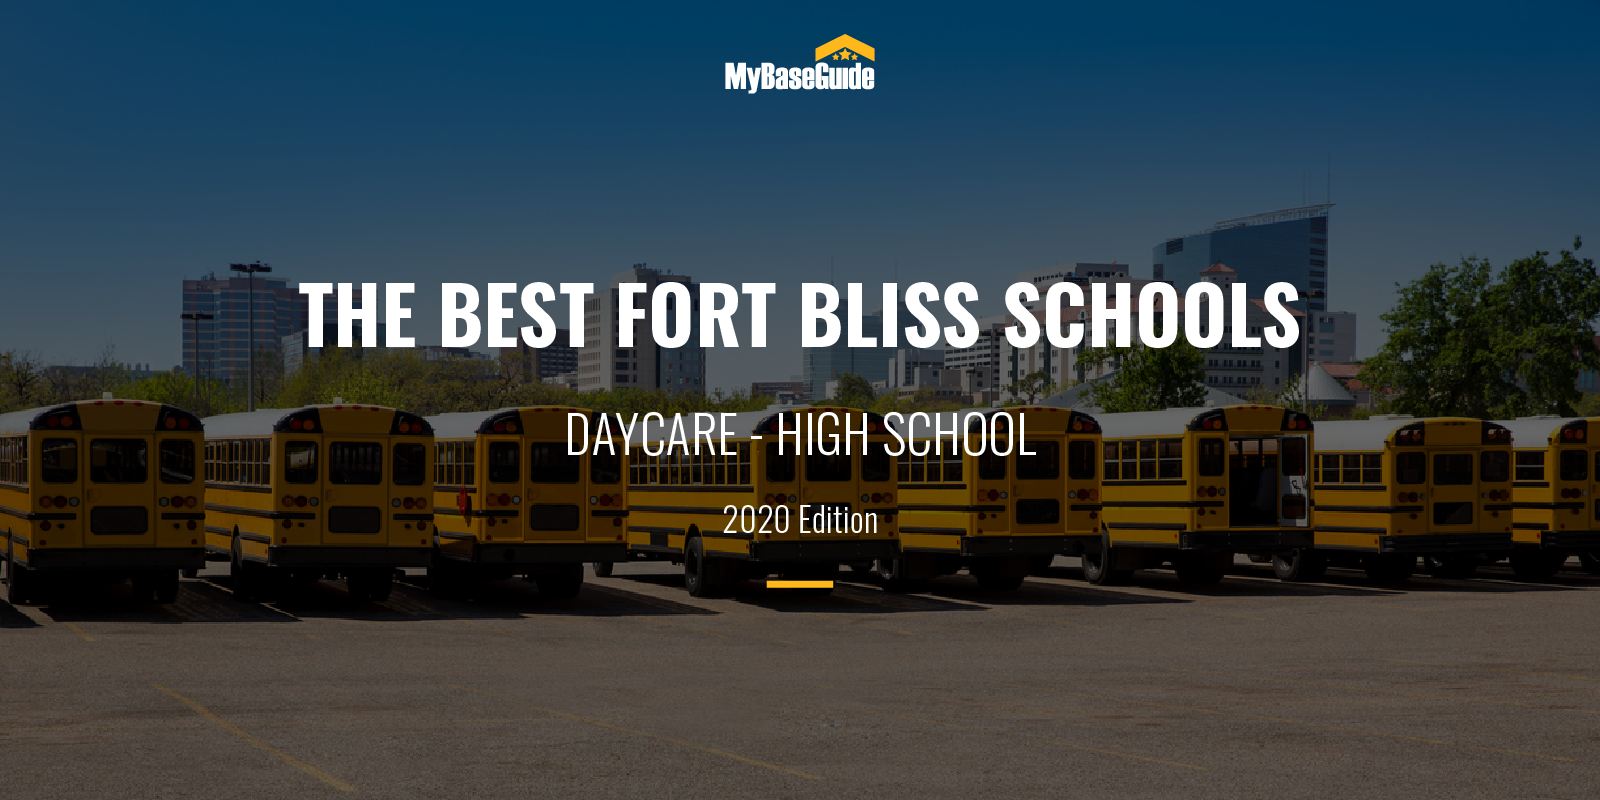 Fort Bliss Schools